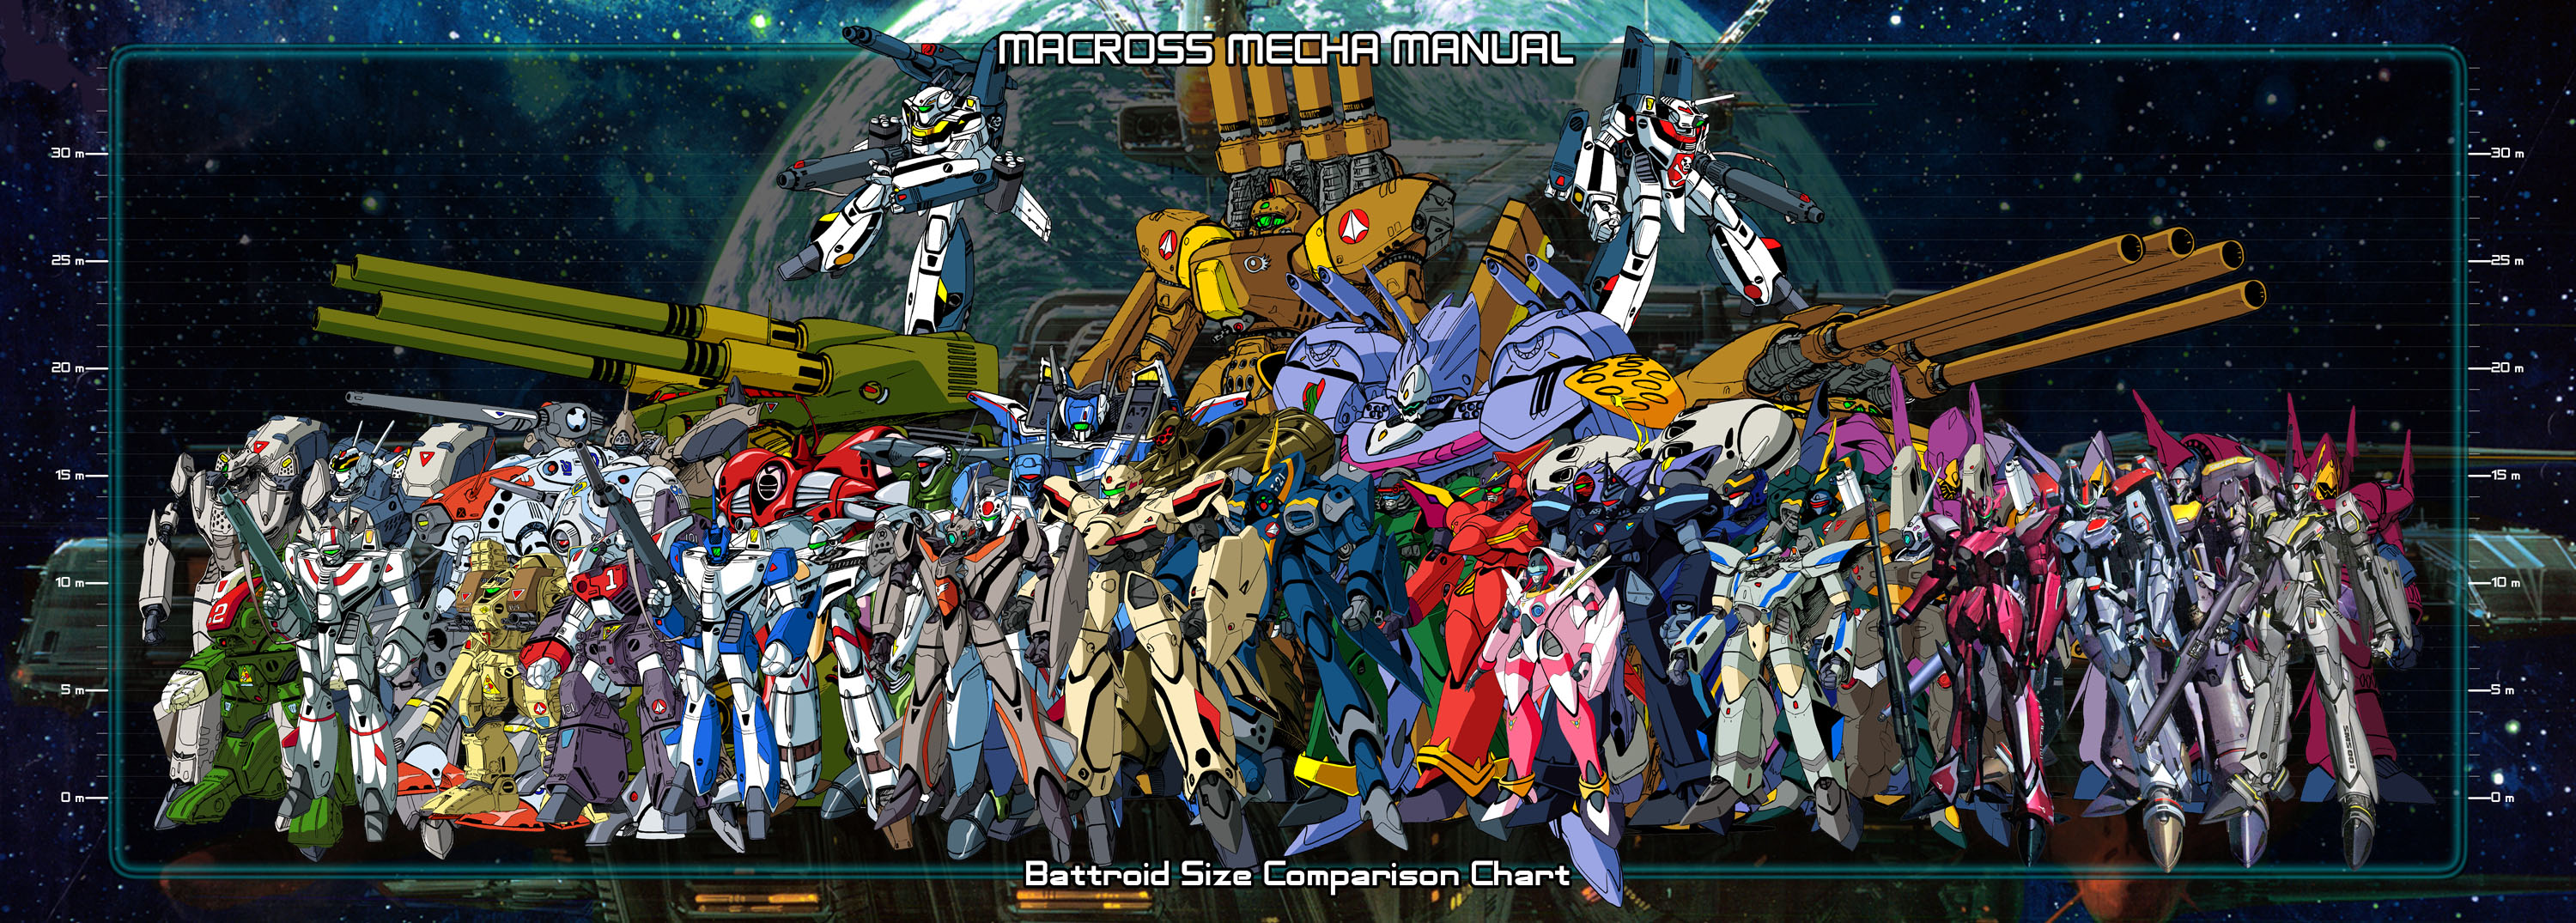 sizechart-battroids-detailed3000.jpg